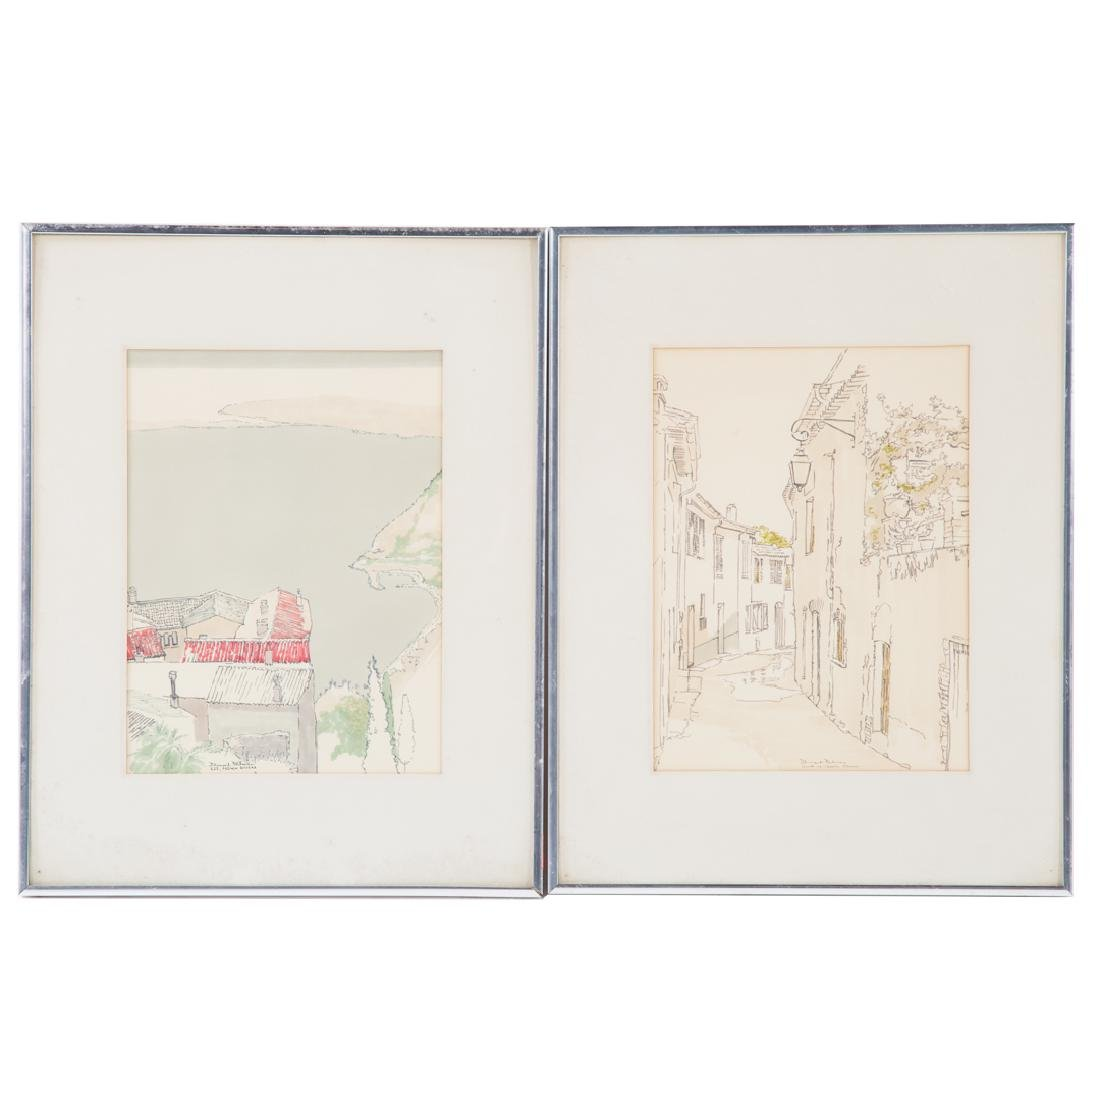 Bennard Perlman. Two framed watercolors of France